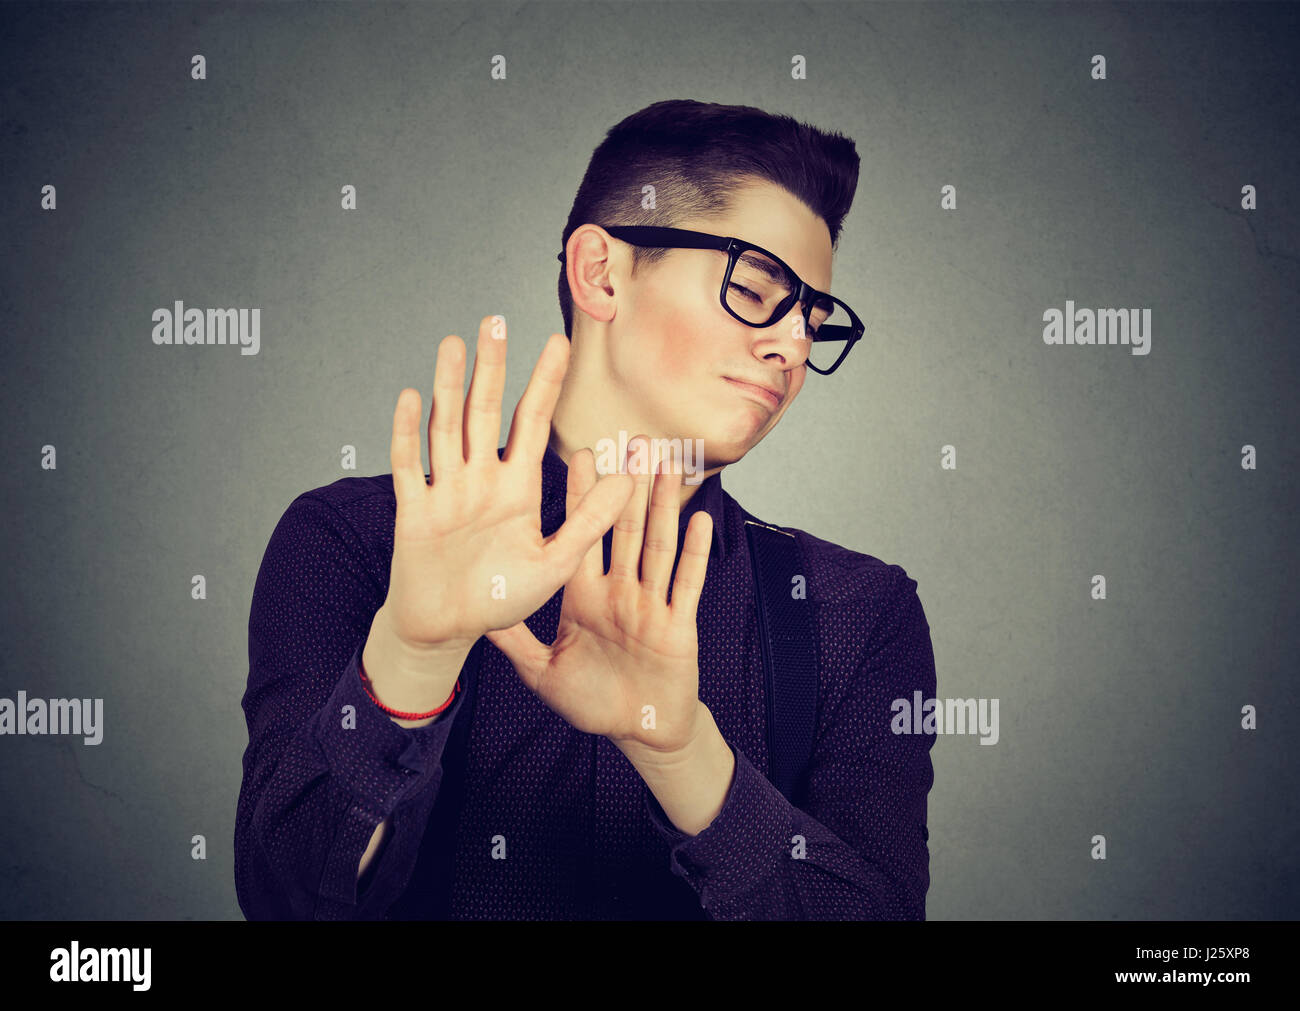 Disgusted young man - Stock Image